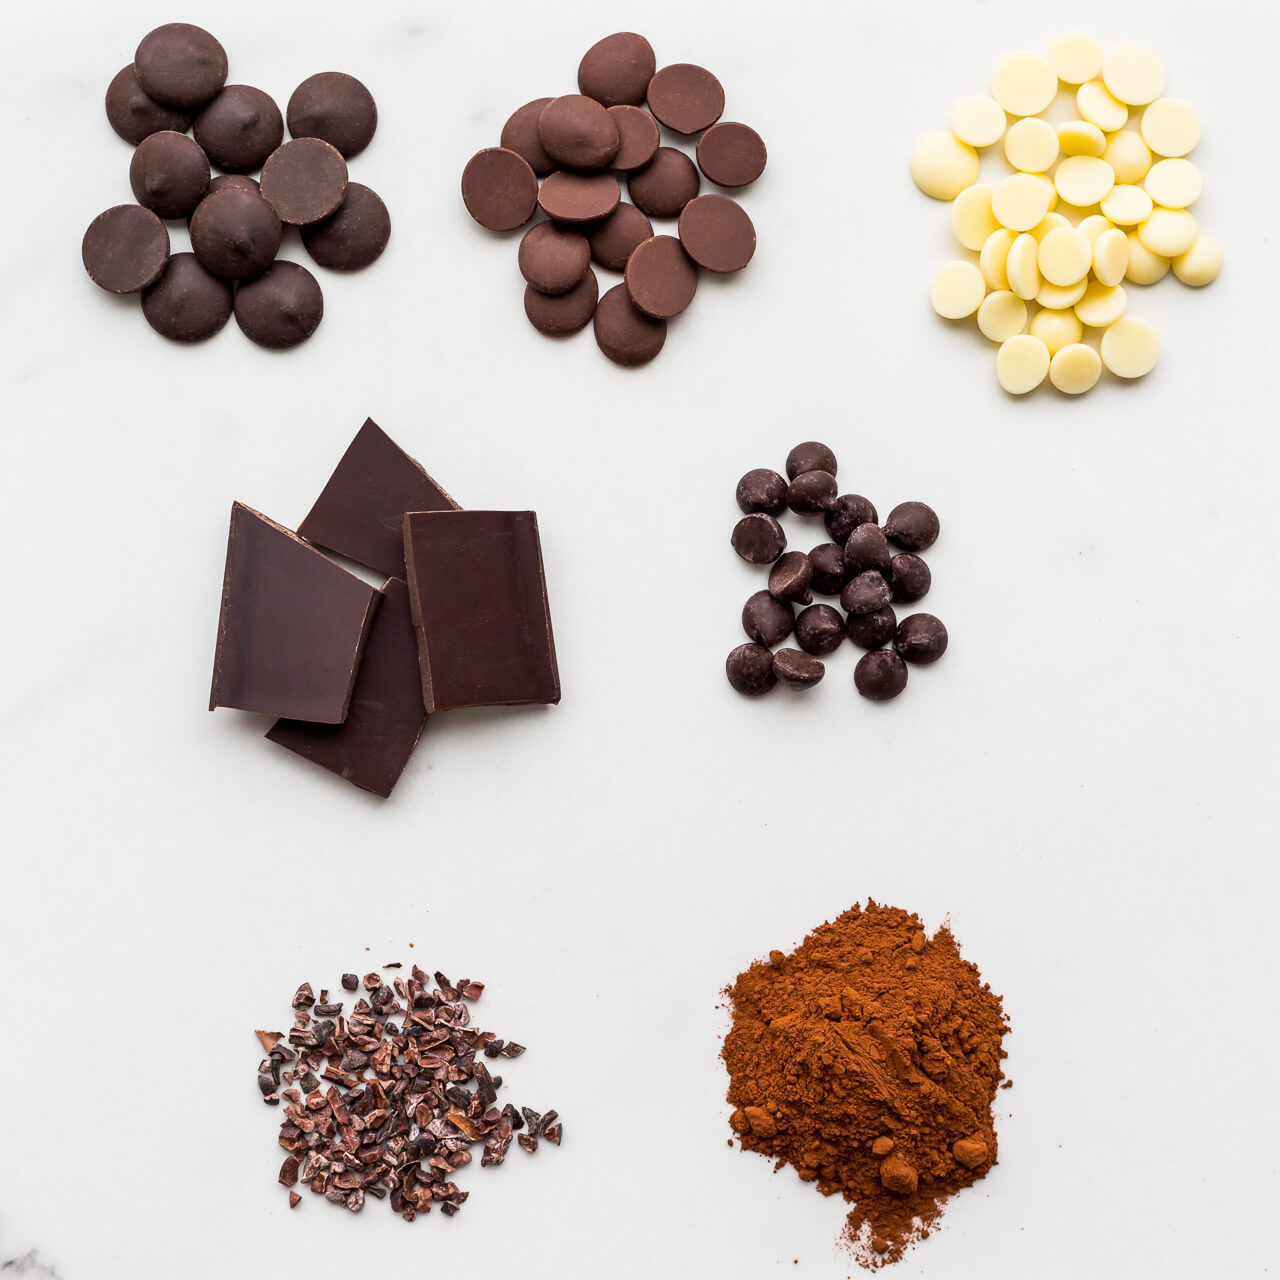 different types of chocolate, dark, milk, and white chocolate, as well as chocolate chips, cocoa nibs, and cocoa powder.